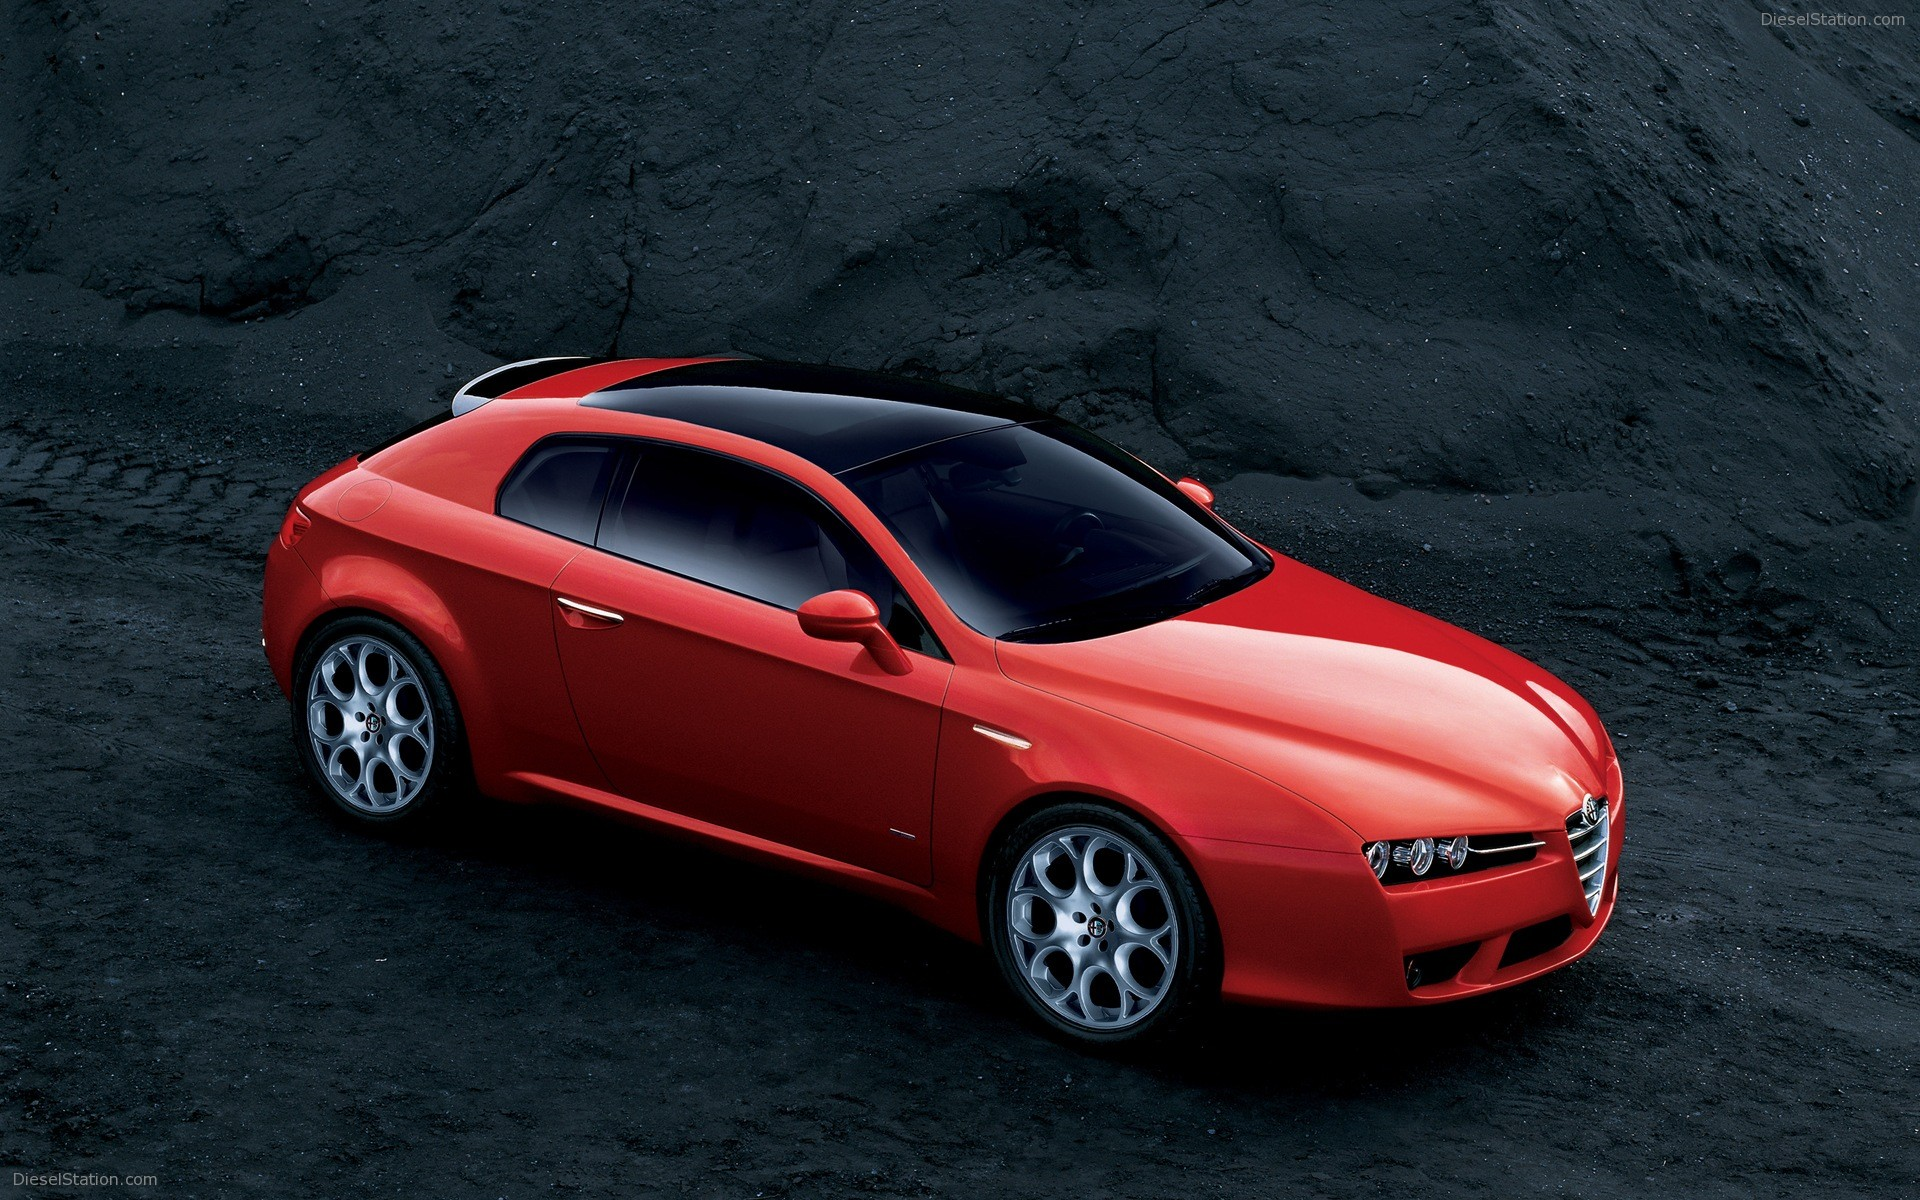 Alfa romeo brera photo - 4